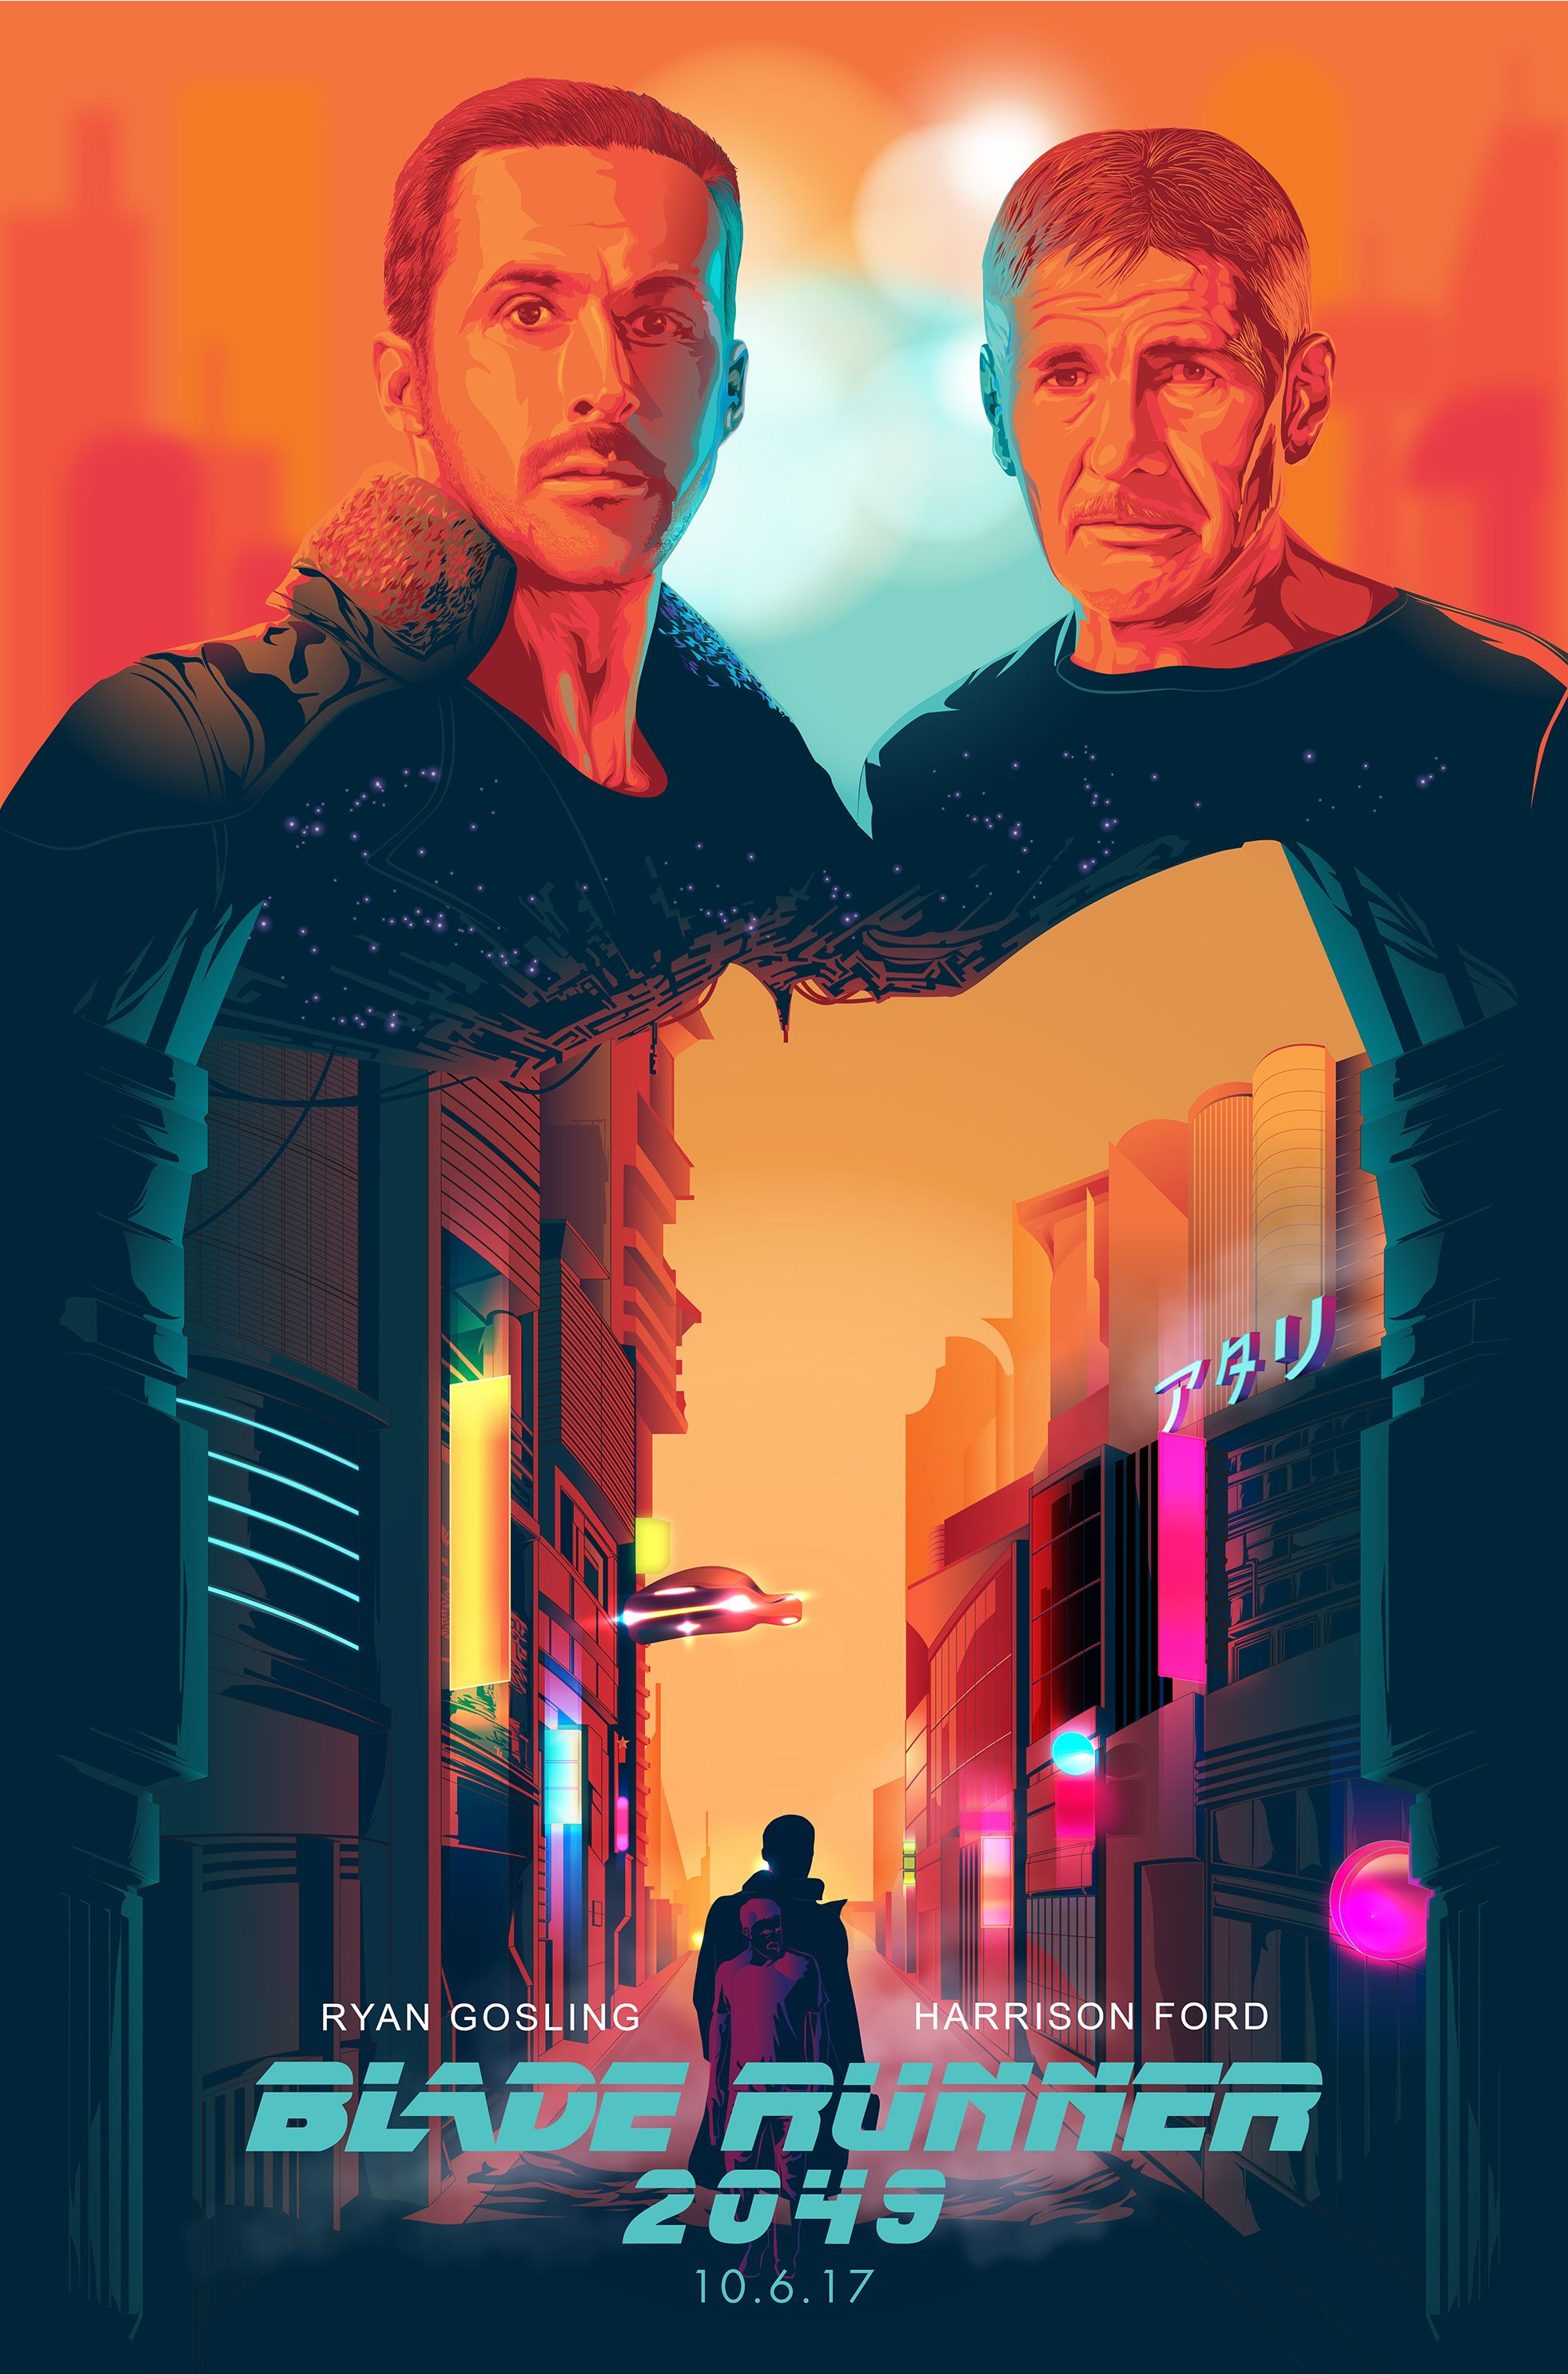 Art Tributes For The Upcoming Blade Runner 2049 Movie Blade Runner Blade Runner 2049 Blade Runner Poster